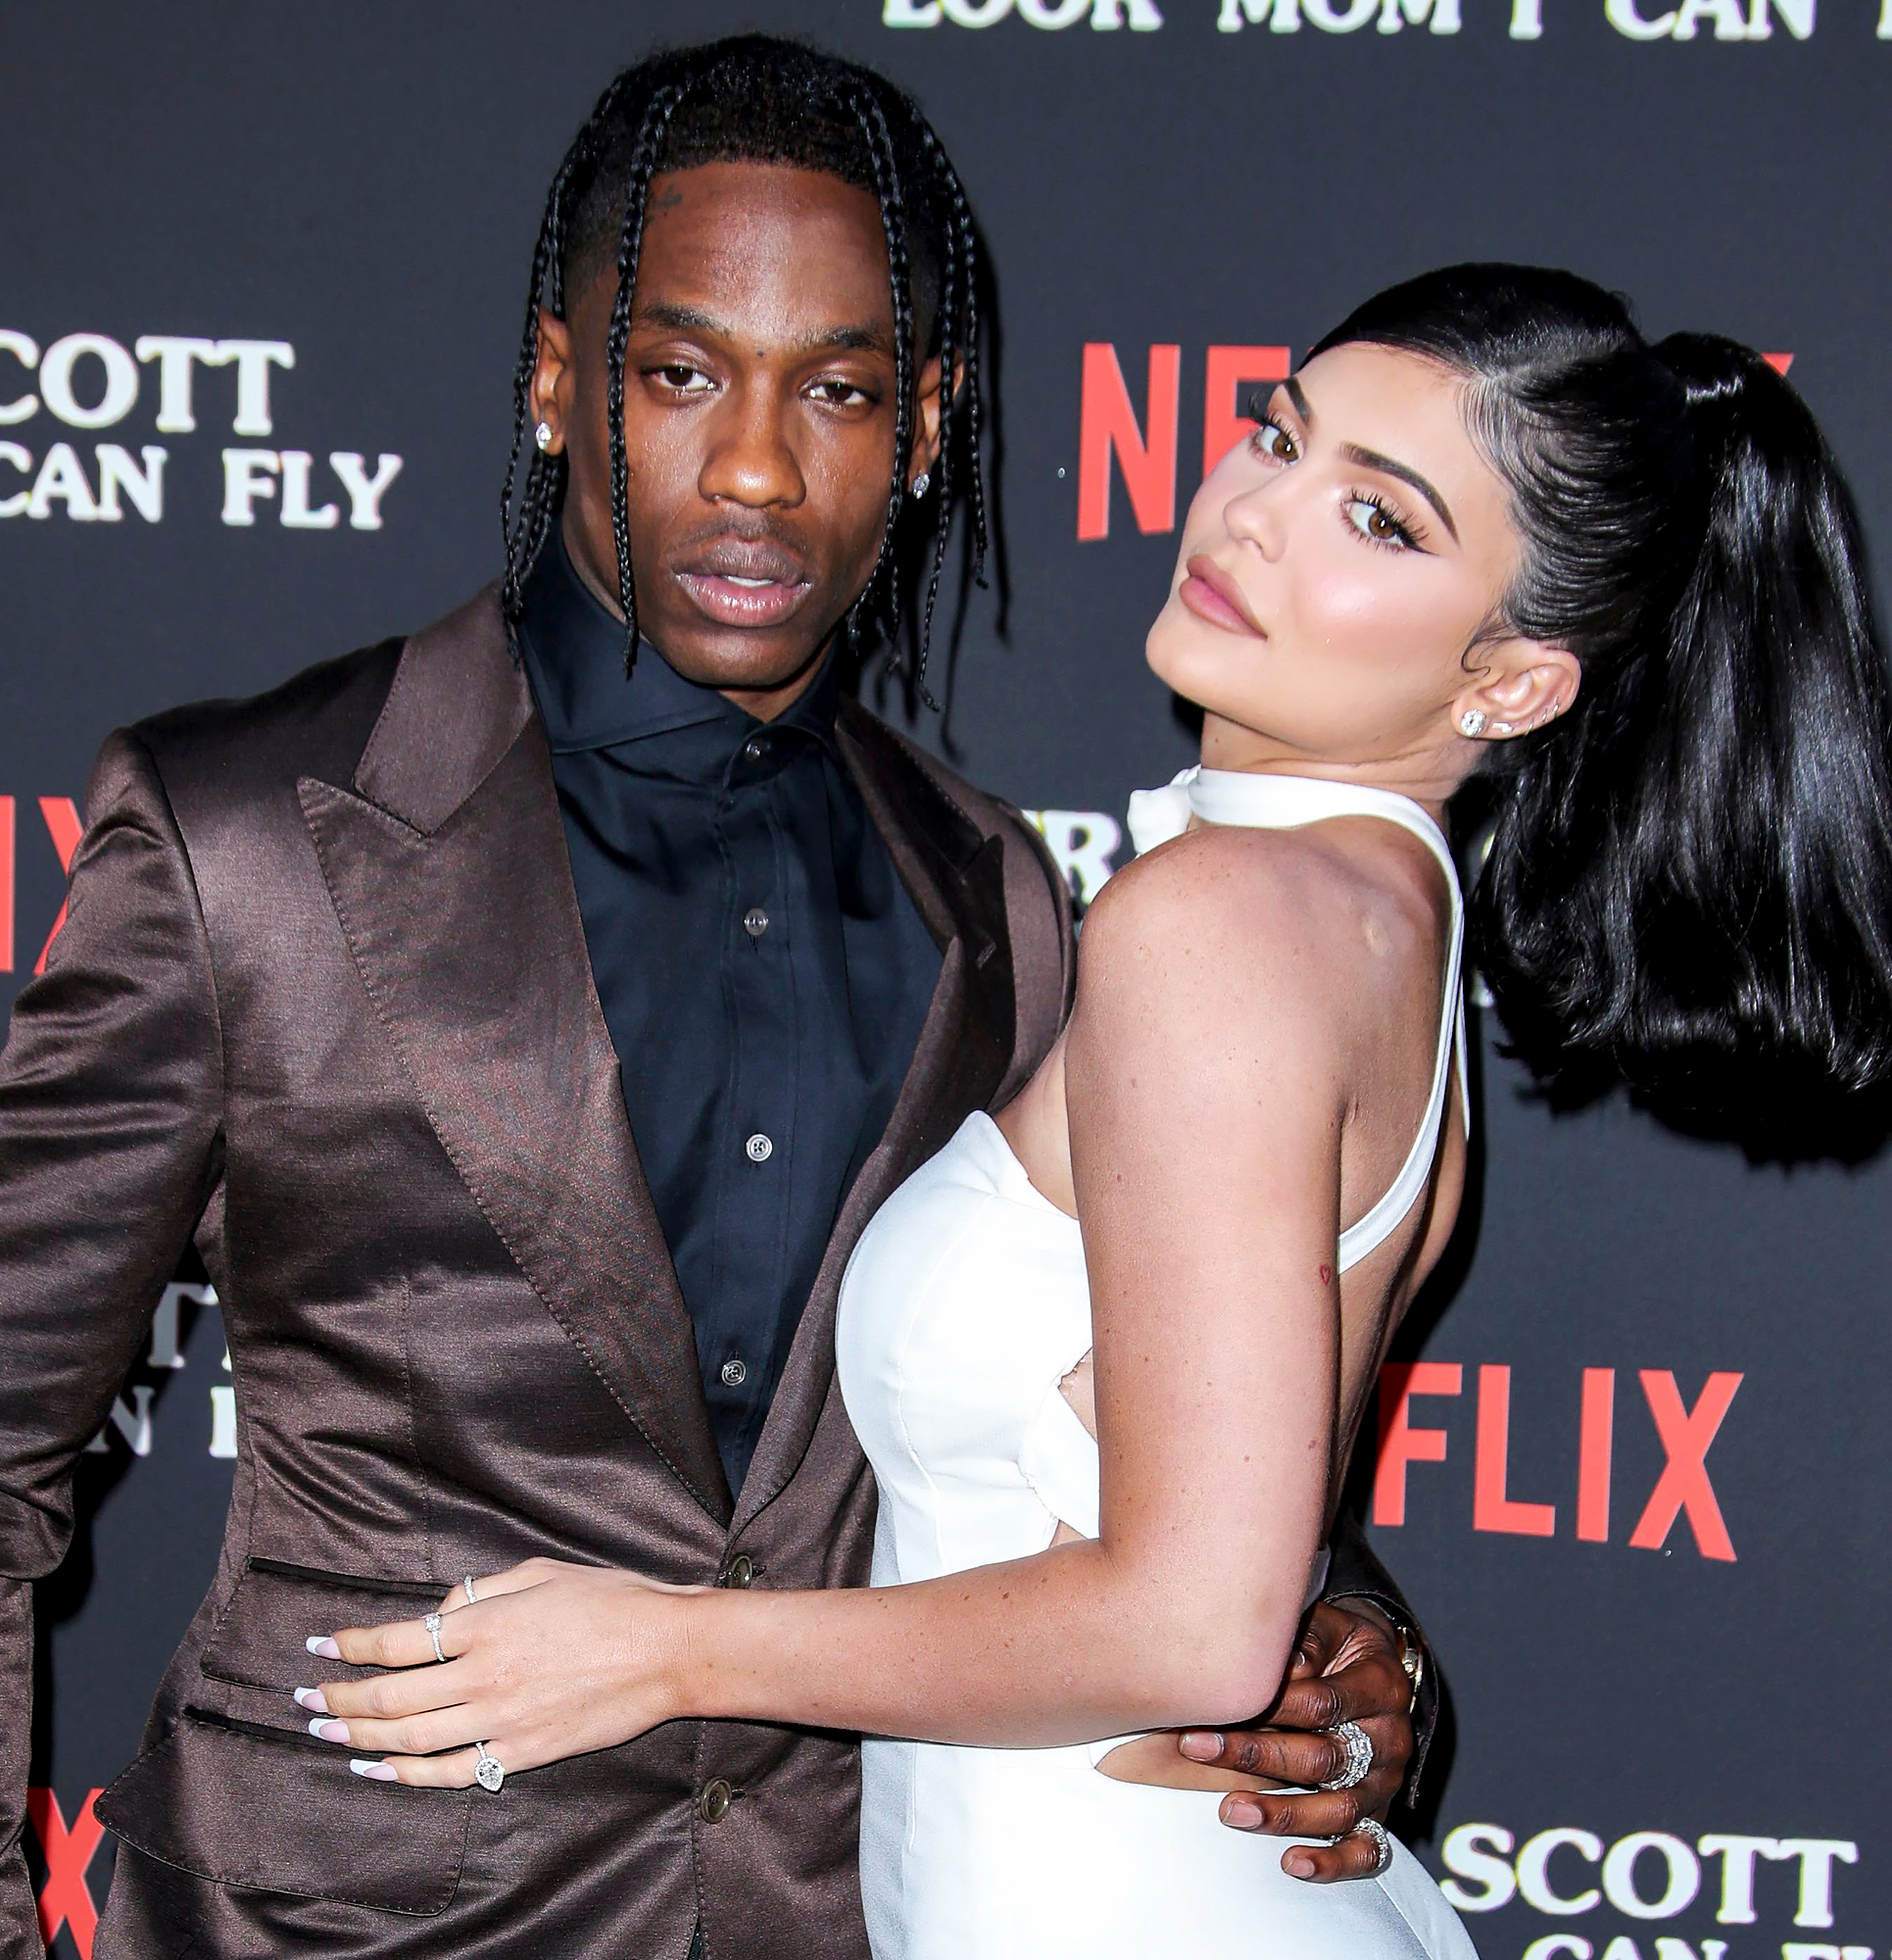 Travis-Scott-releases-new-music-post-Kylie-split-2